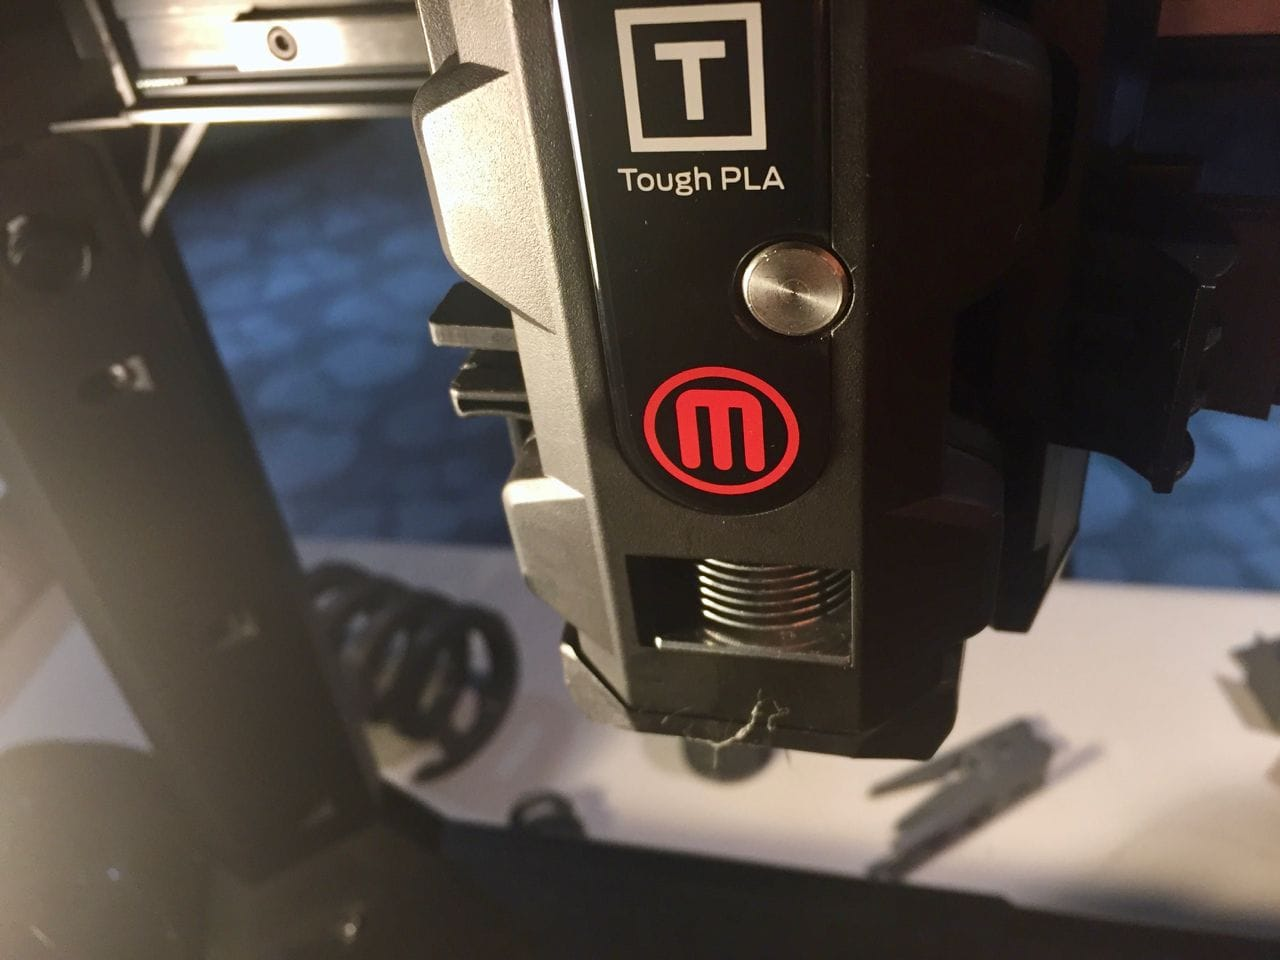 The Tough PLA Smart Extruder+ from MakerBot